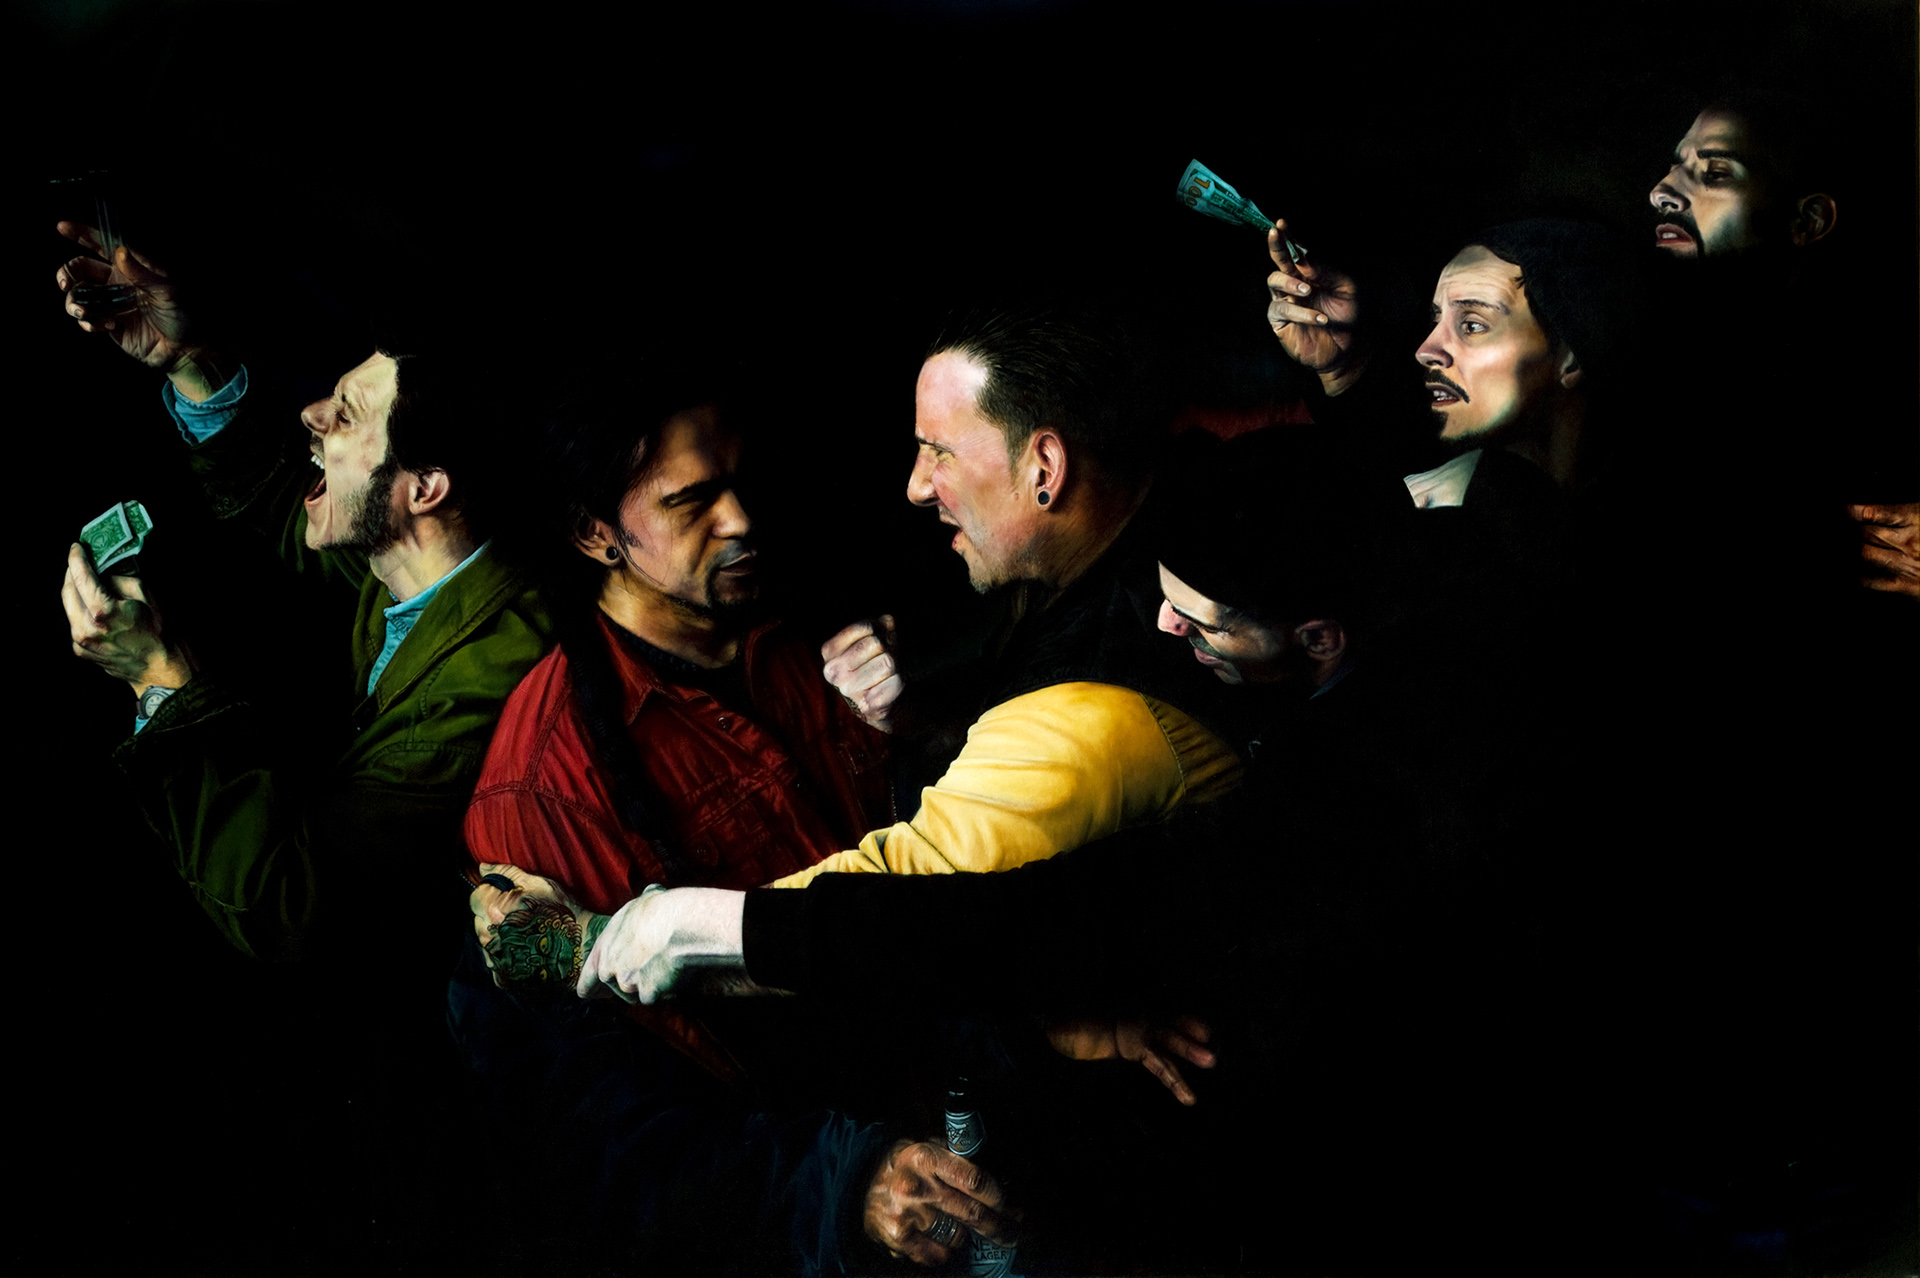 Judas'-Behavior-Russ-Ritell-Oil-Painter